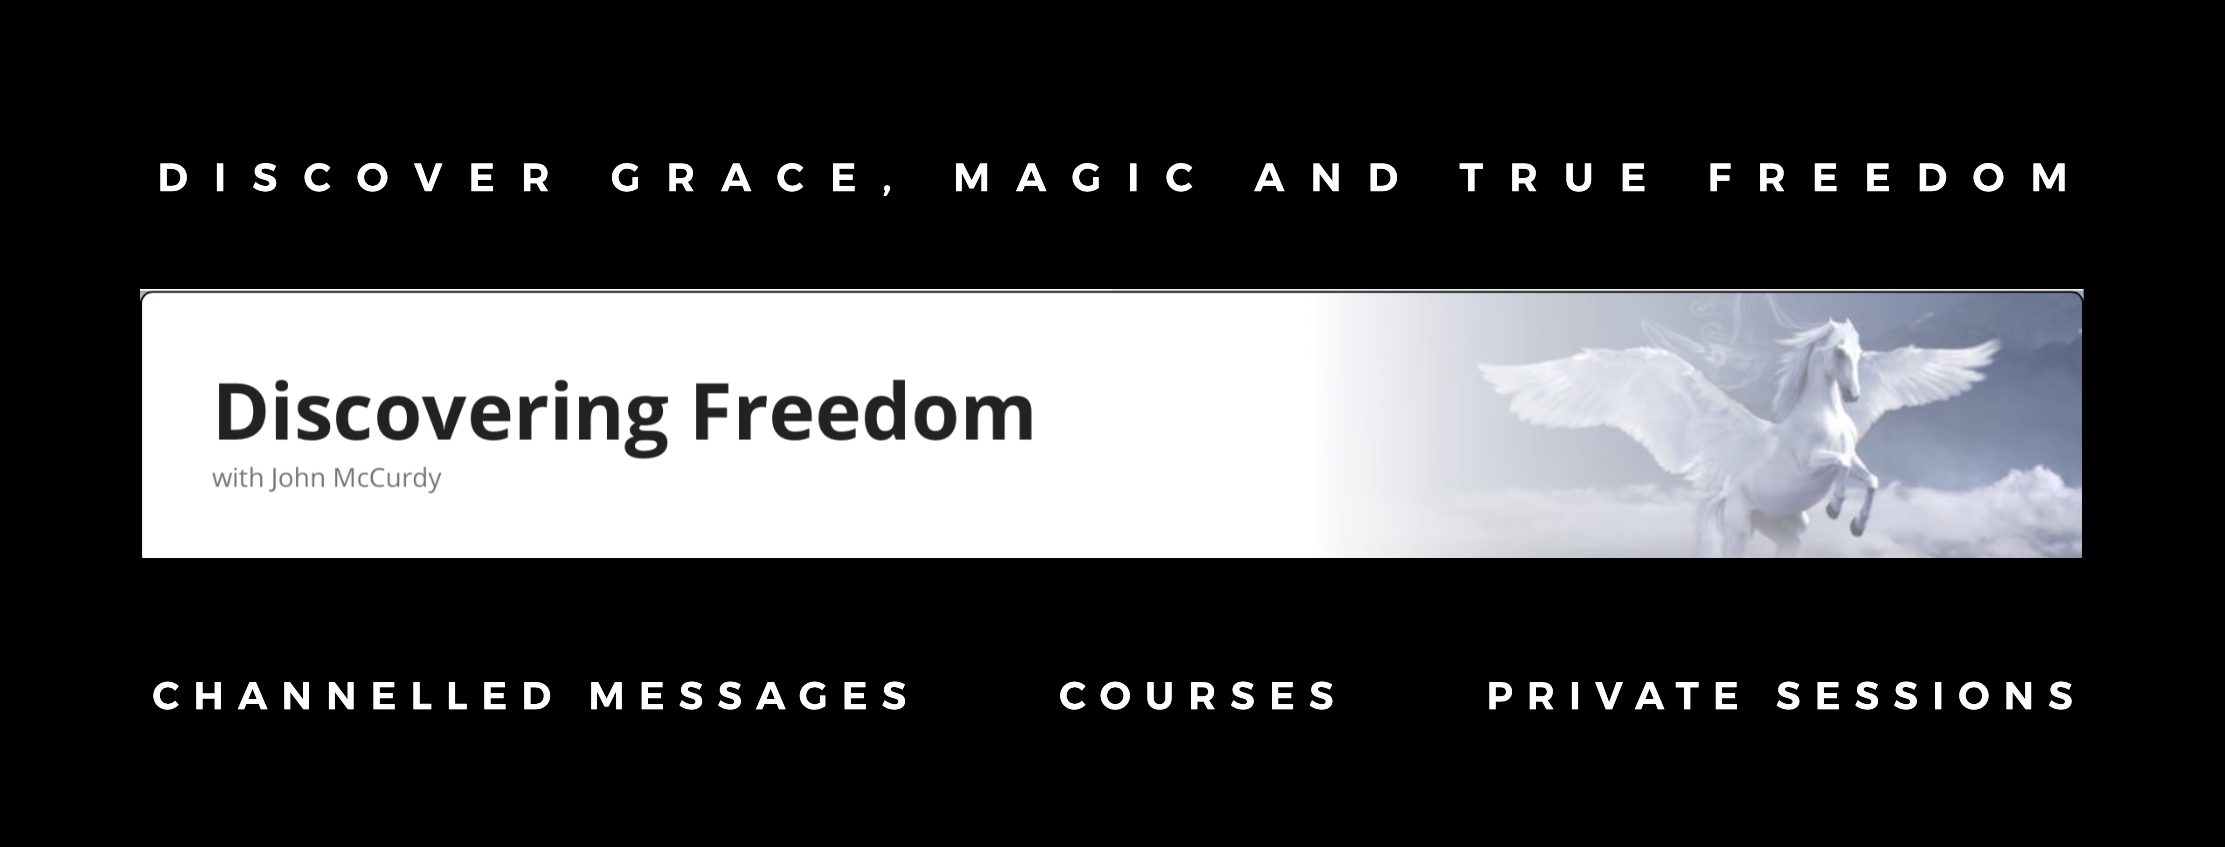 John McCurdy assists you to discover grace, magic, and true freedom Channelled messages, courses, private sessions